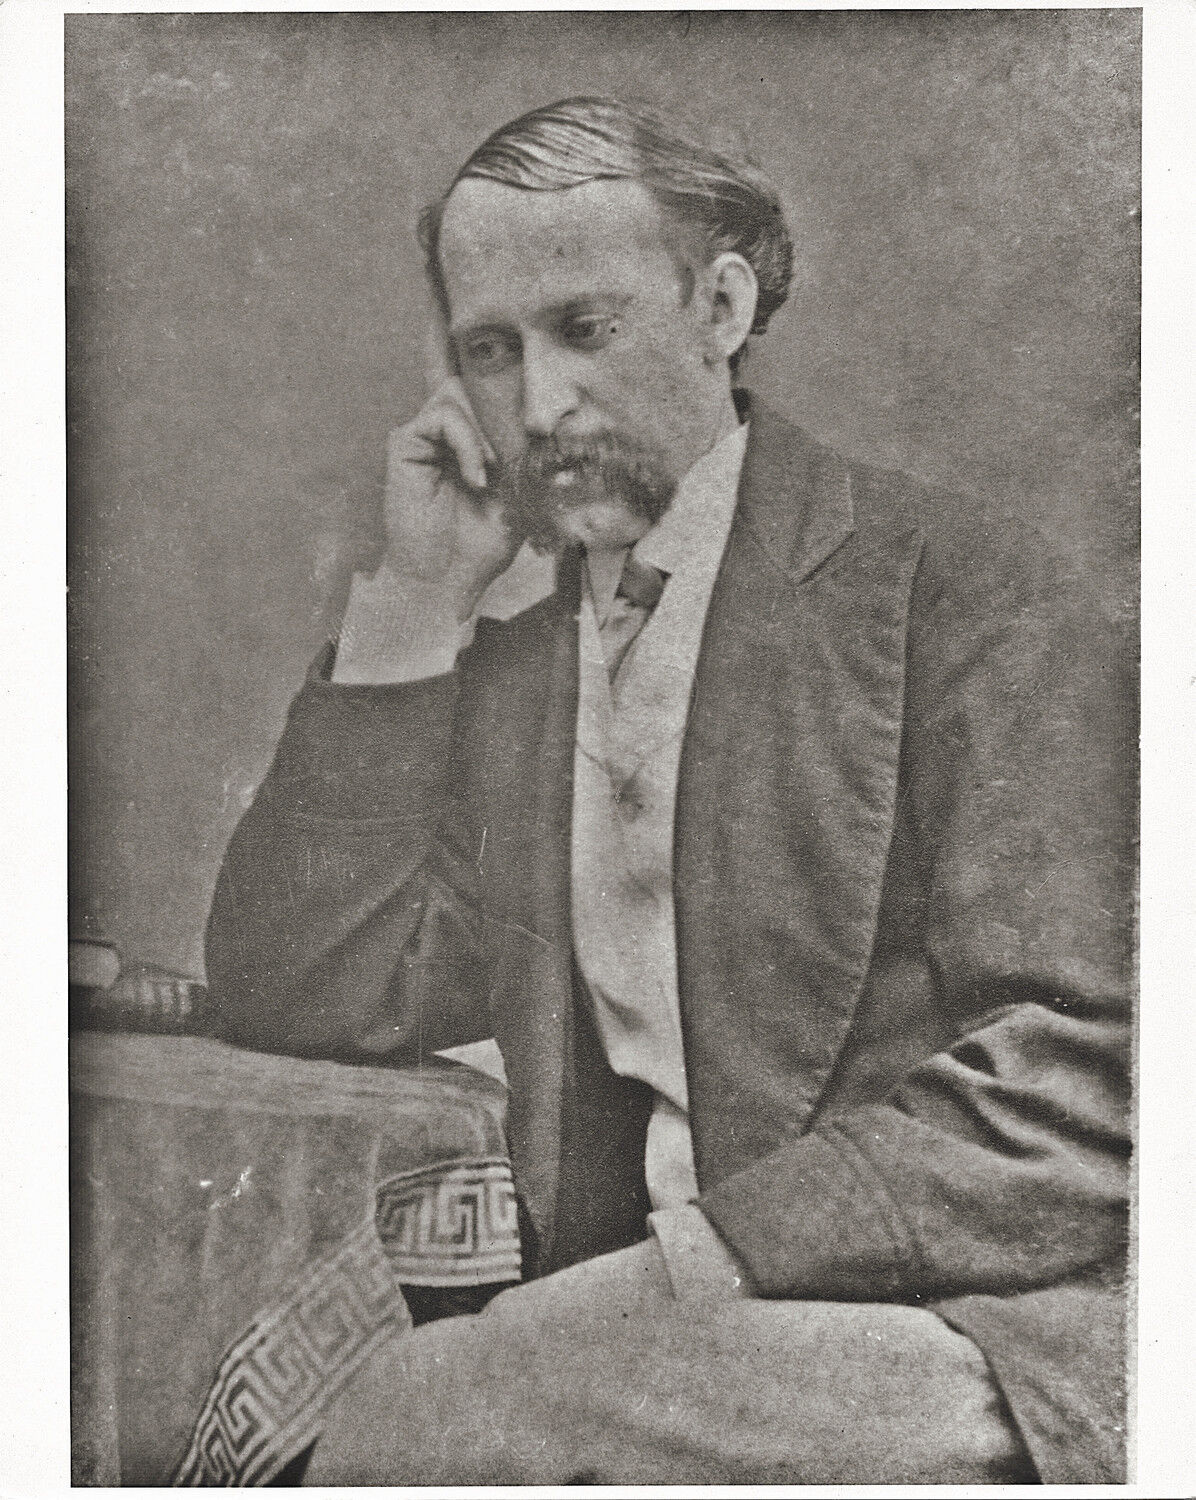 A Haunting Mystery: Brattleboro's T.P. James - Spiritualist, writer ... and conman?